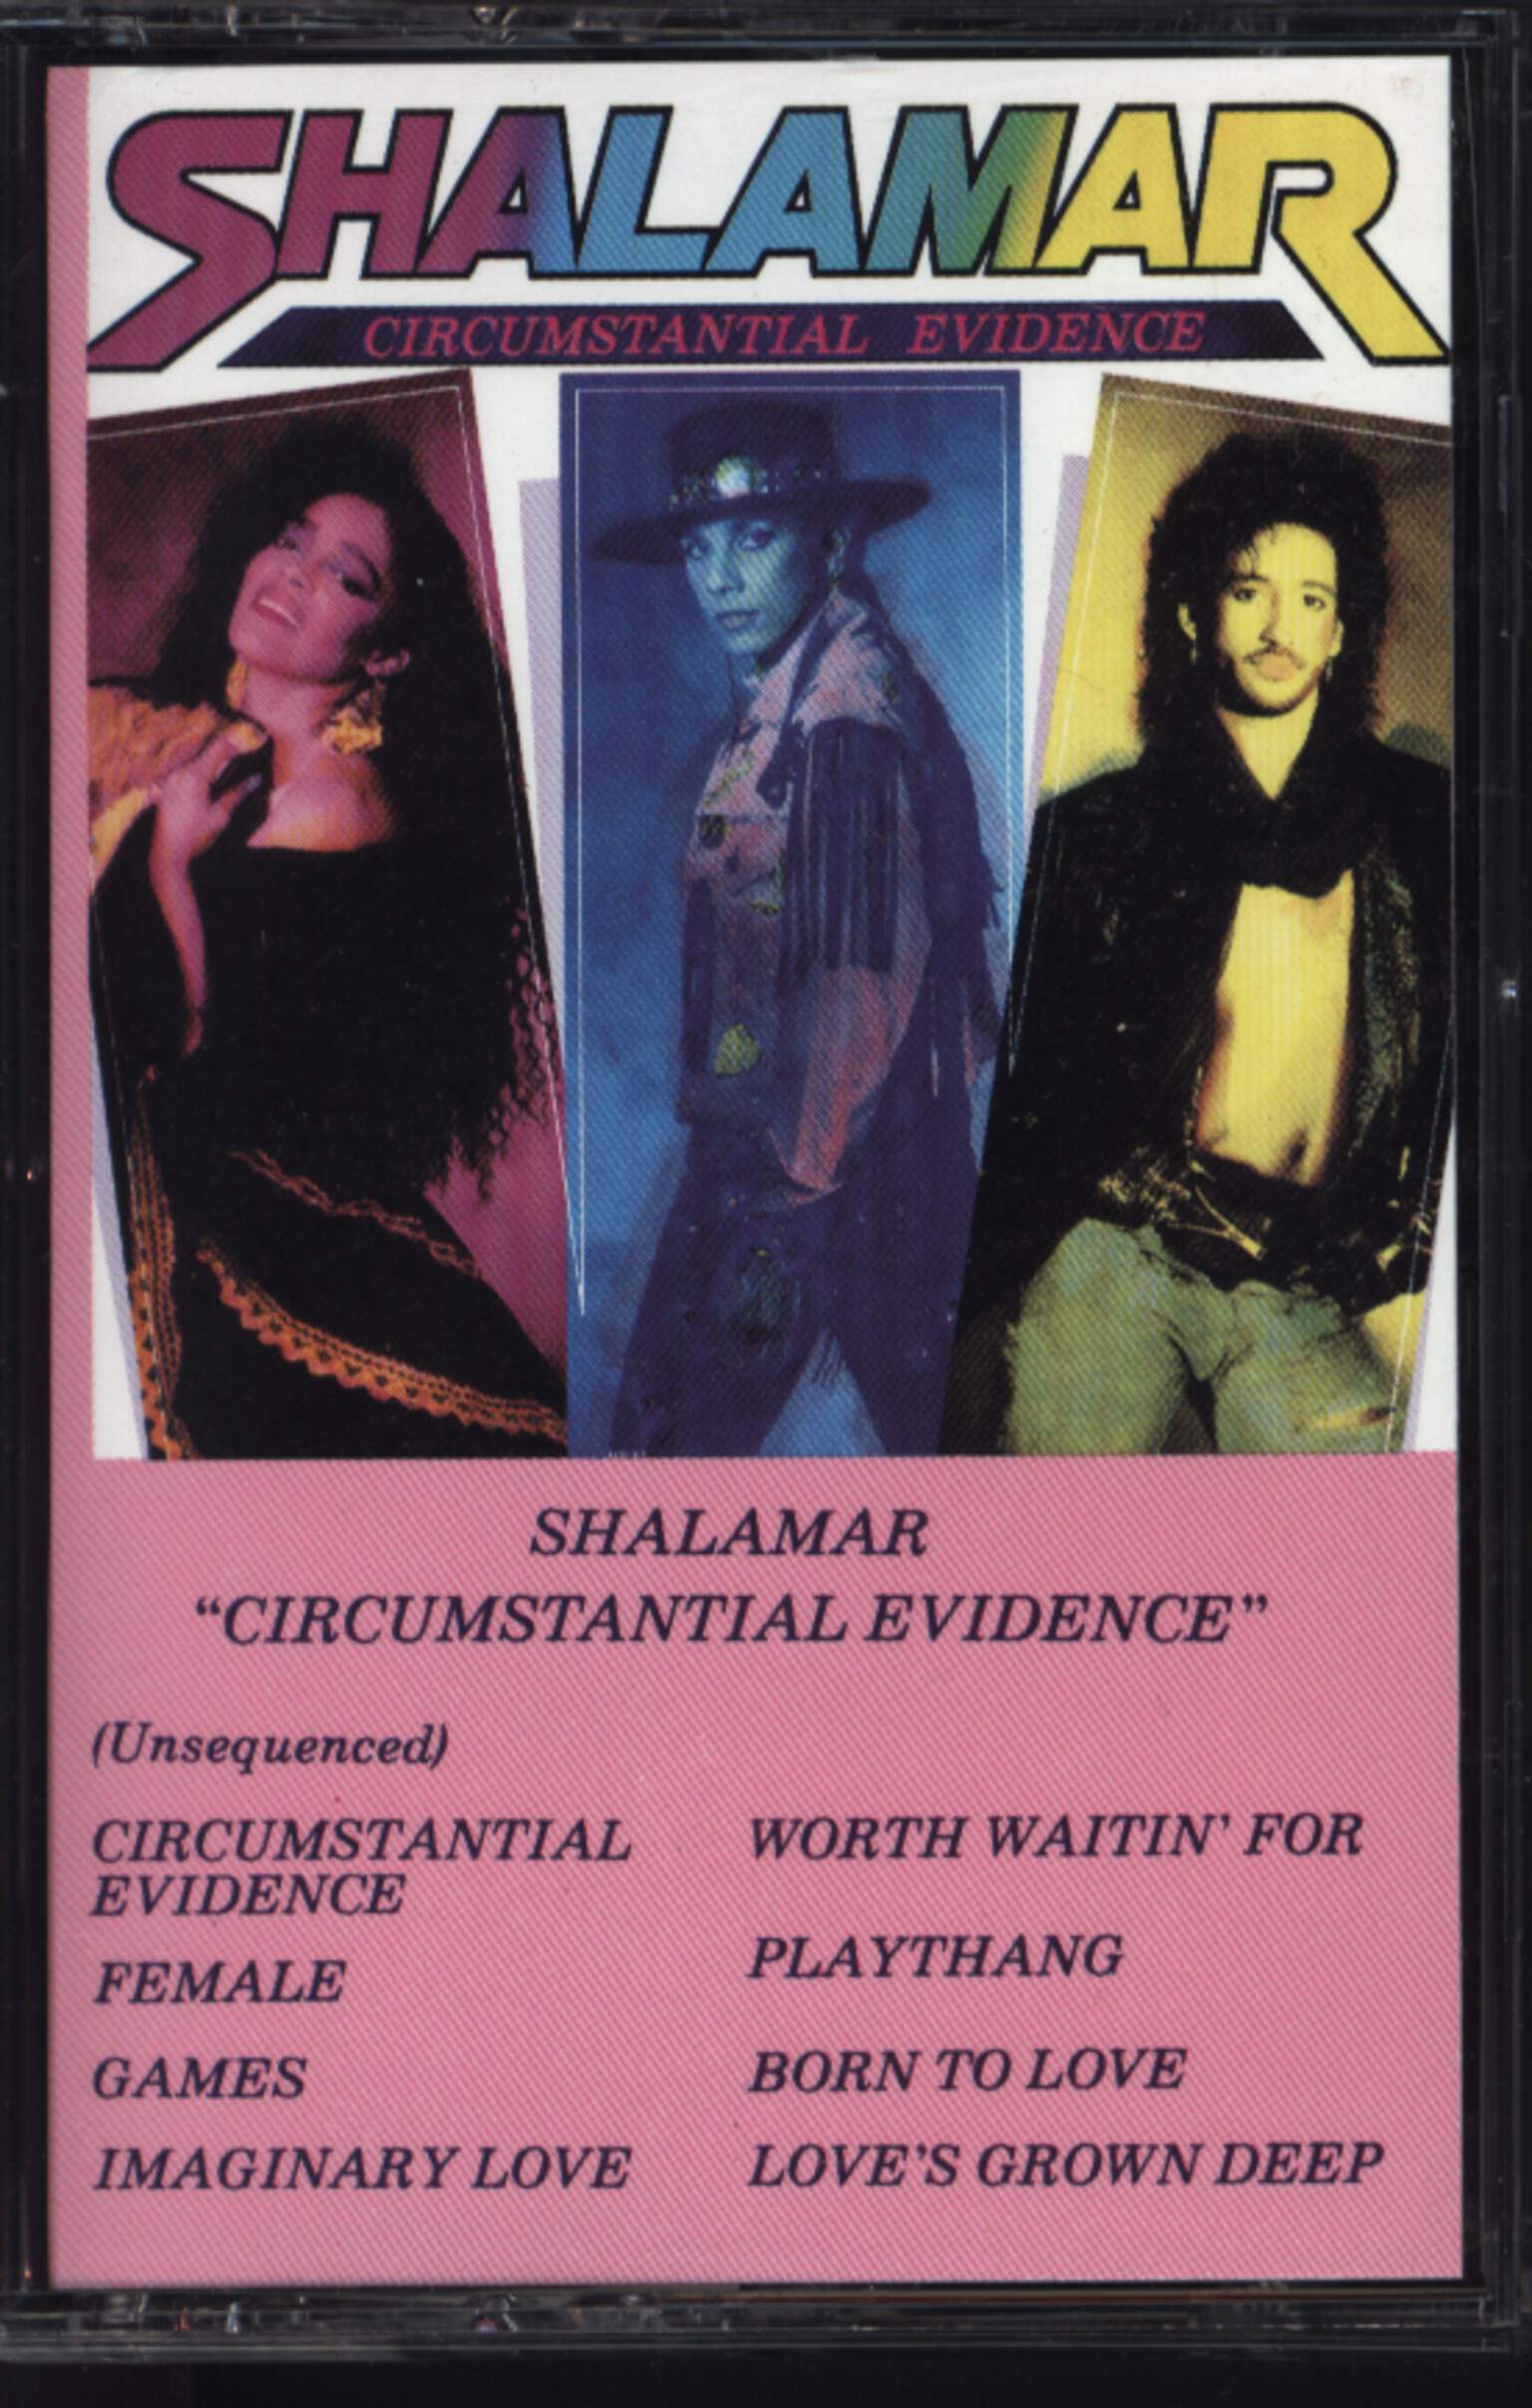 Shalamar: Circumstantial Evidence, Compact Cassette